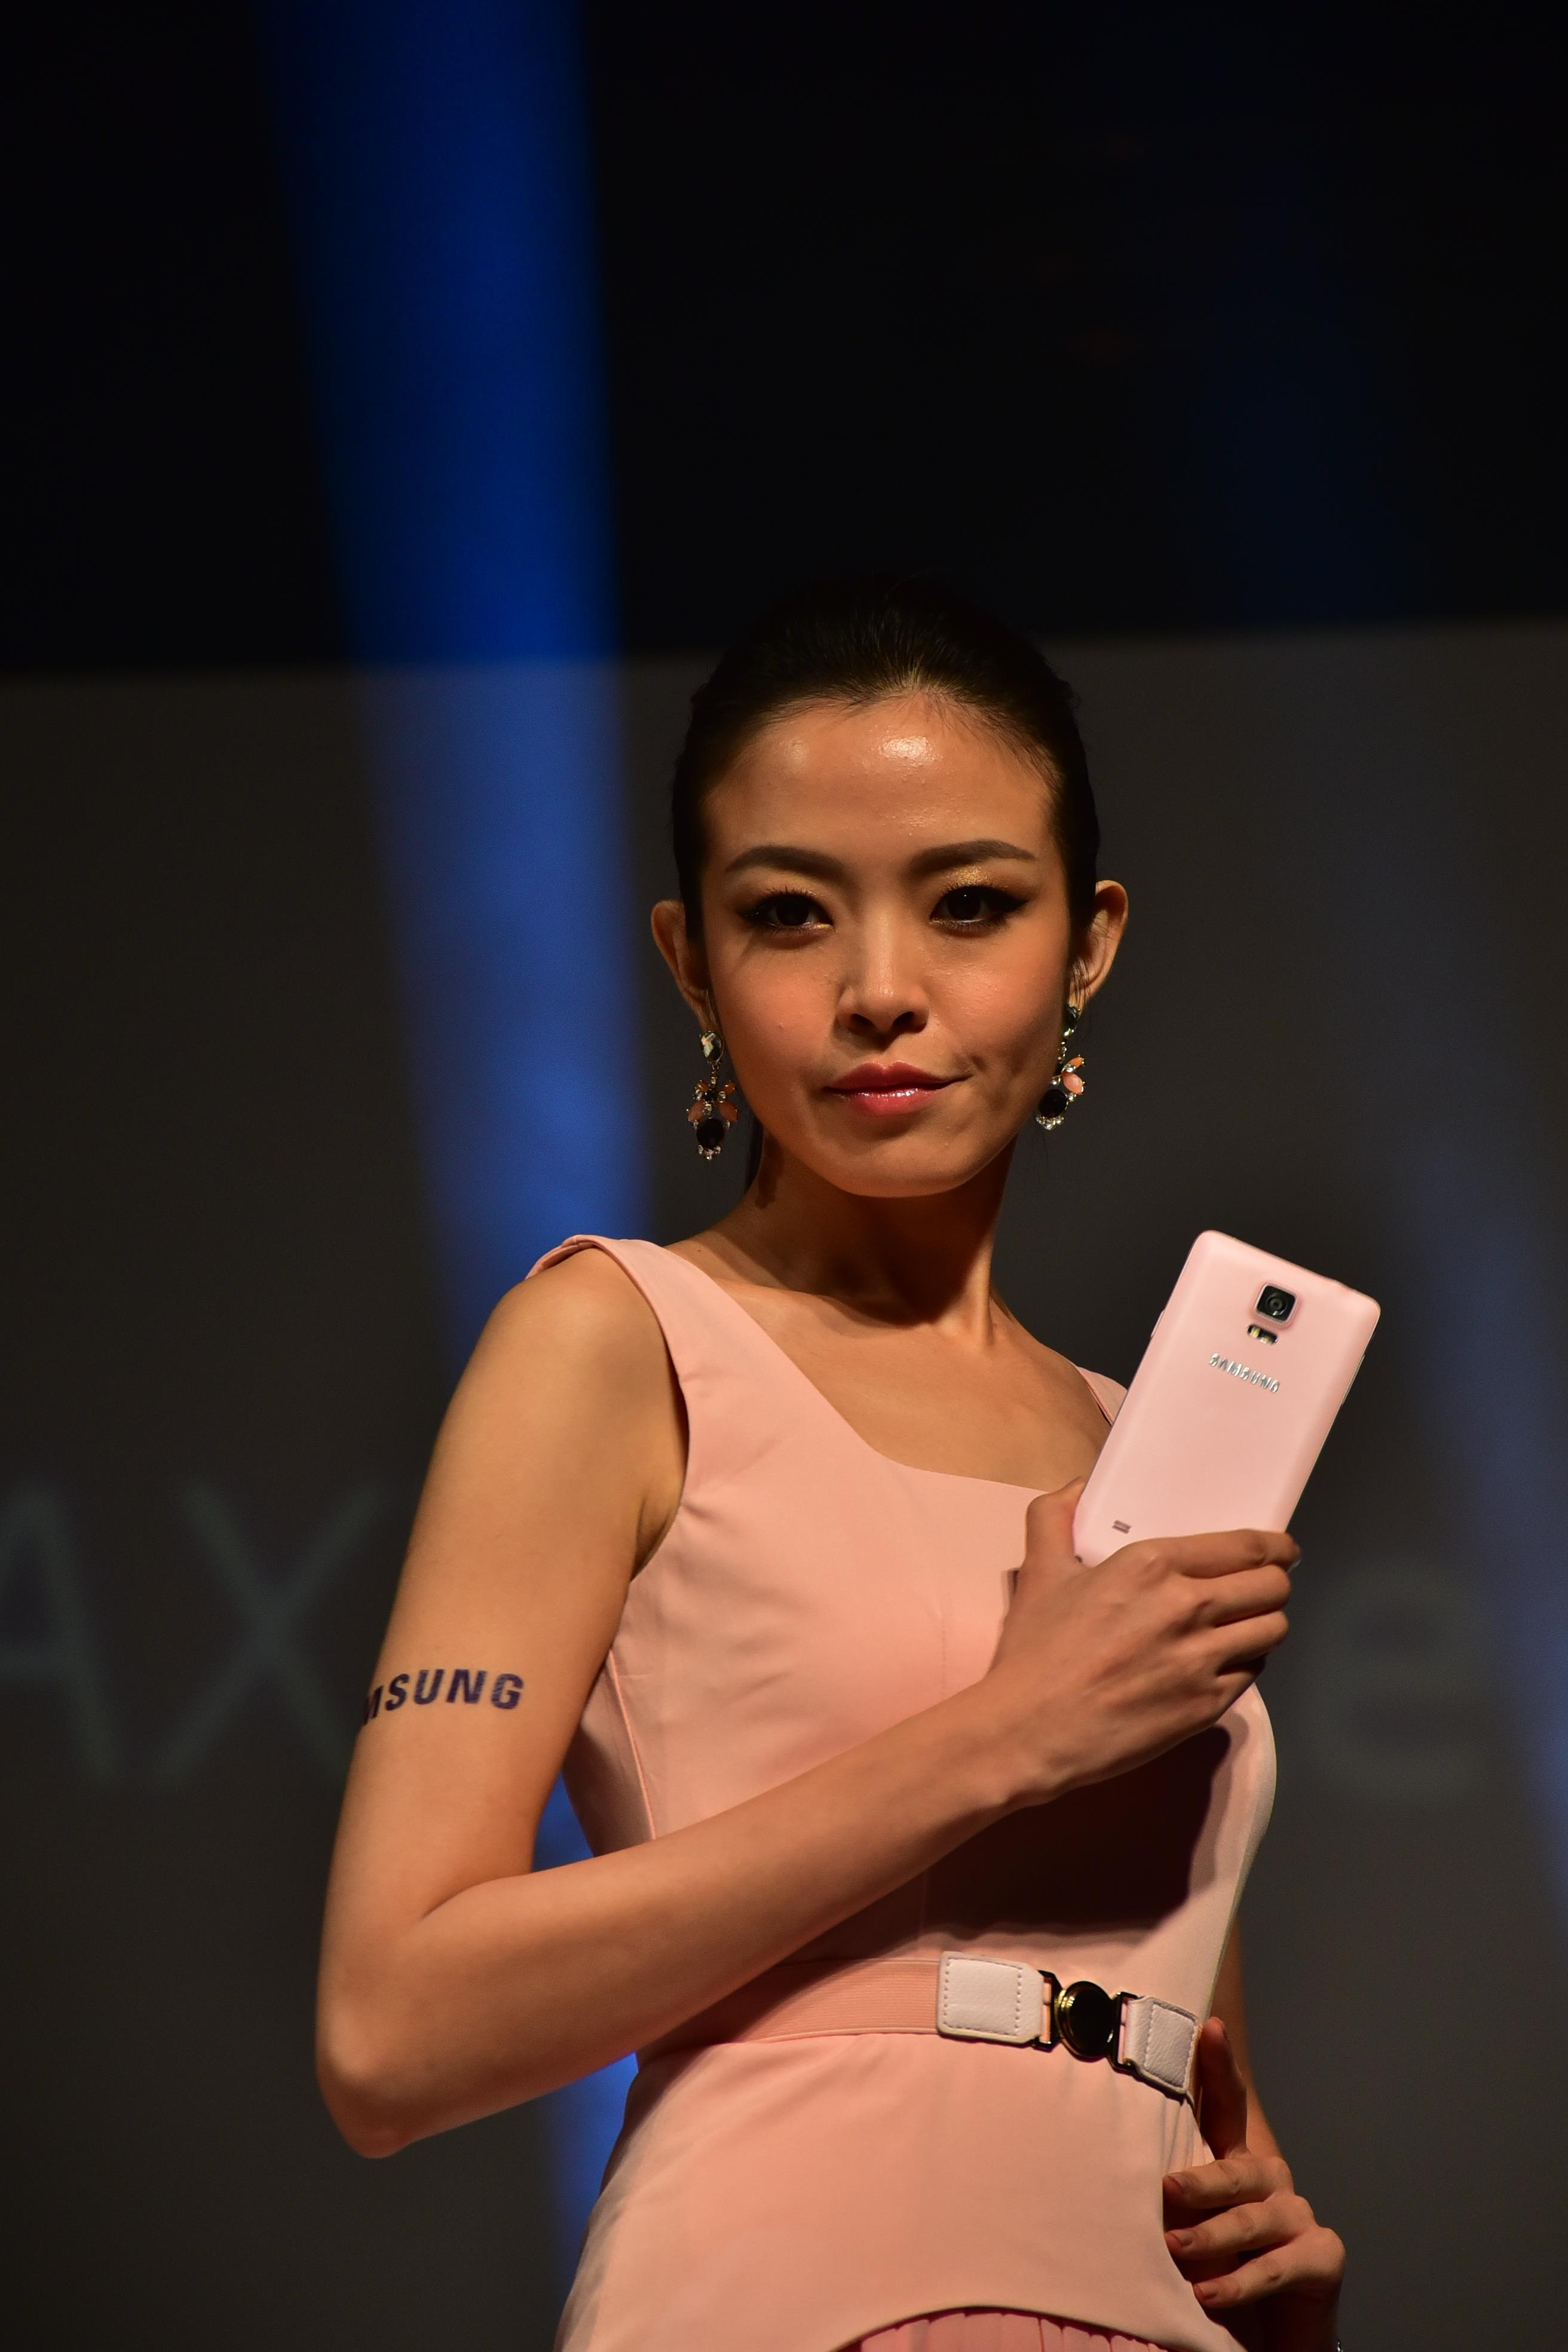 SAMSUNG GALAXY Note 4 with 歌后 蔡依林 !! - XFastest - DSC_2171.JPG